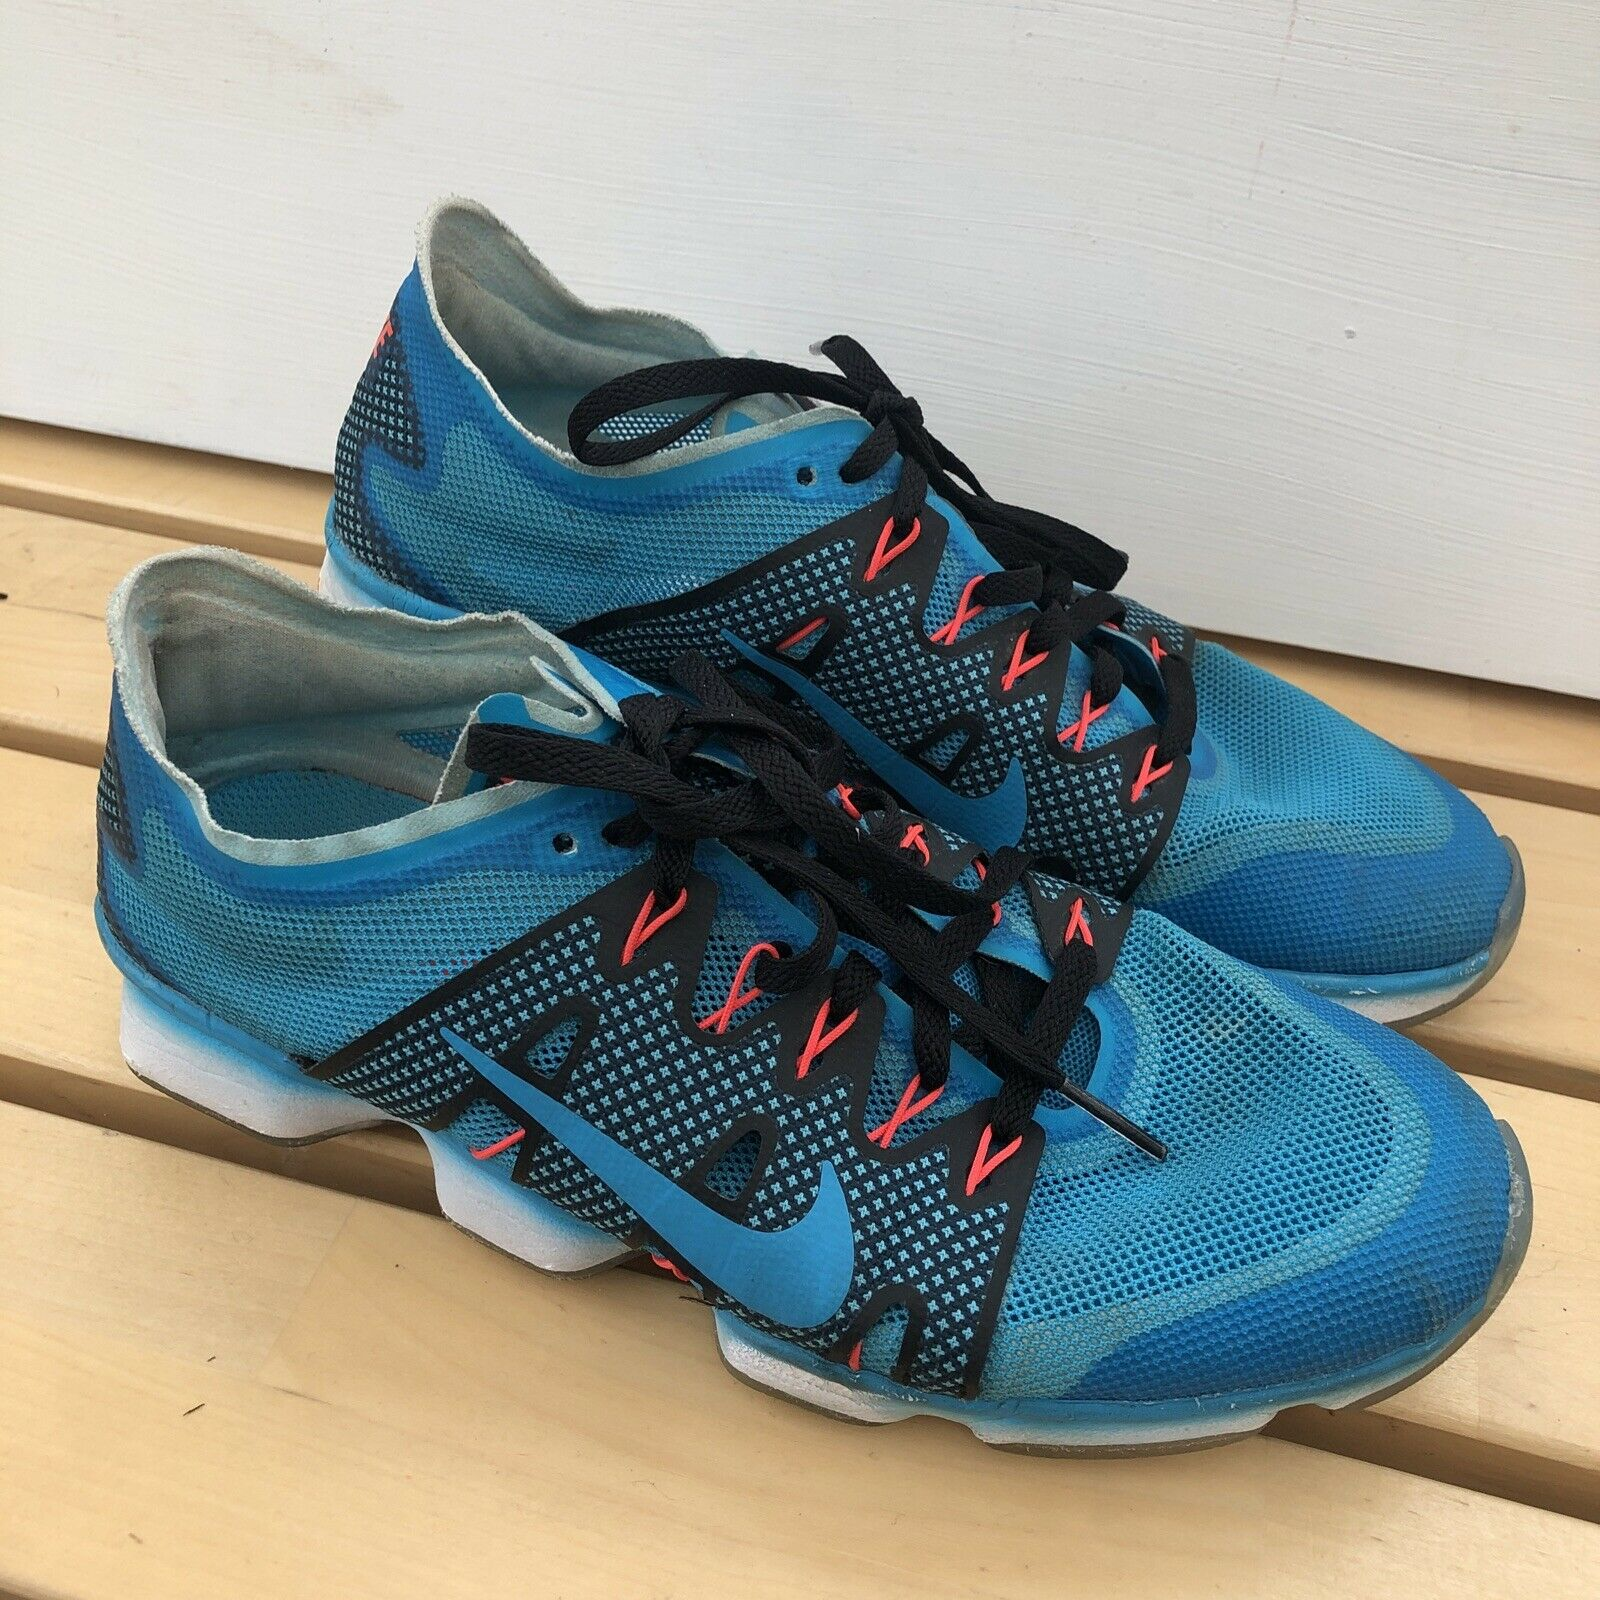 Nike Air Zoom Fit Agility 2 Femme Baskets/Sneakers turquoise Maille Taille UK 5